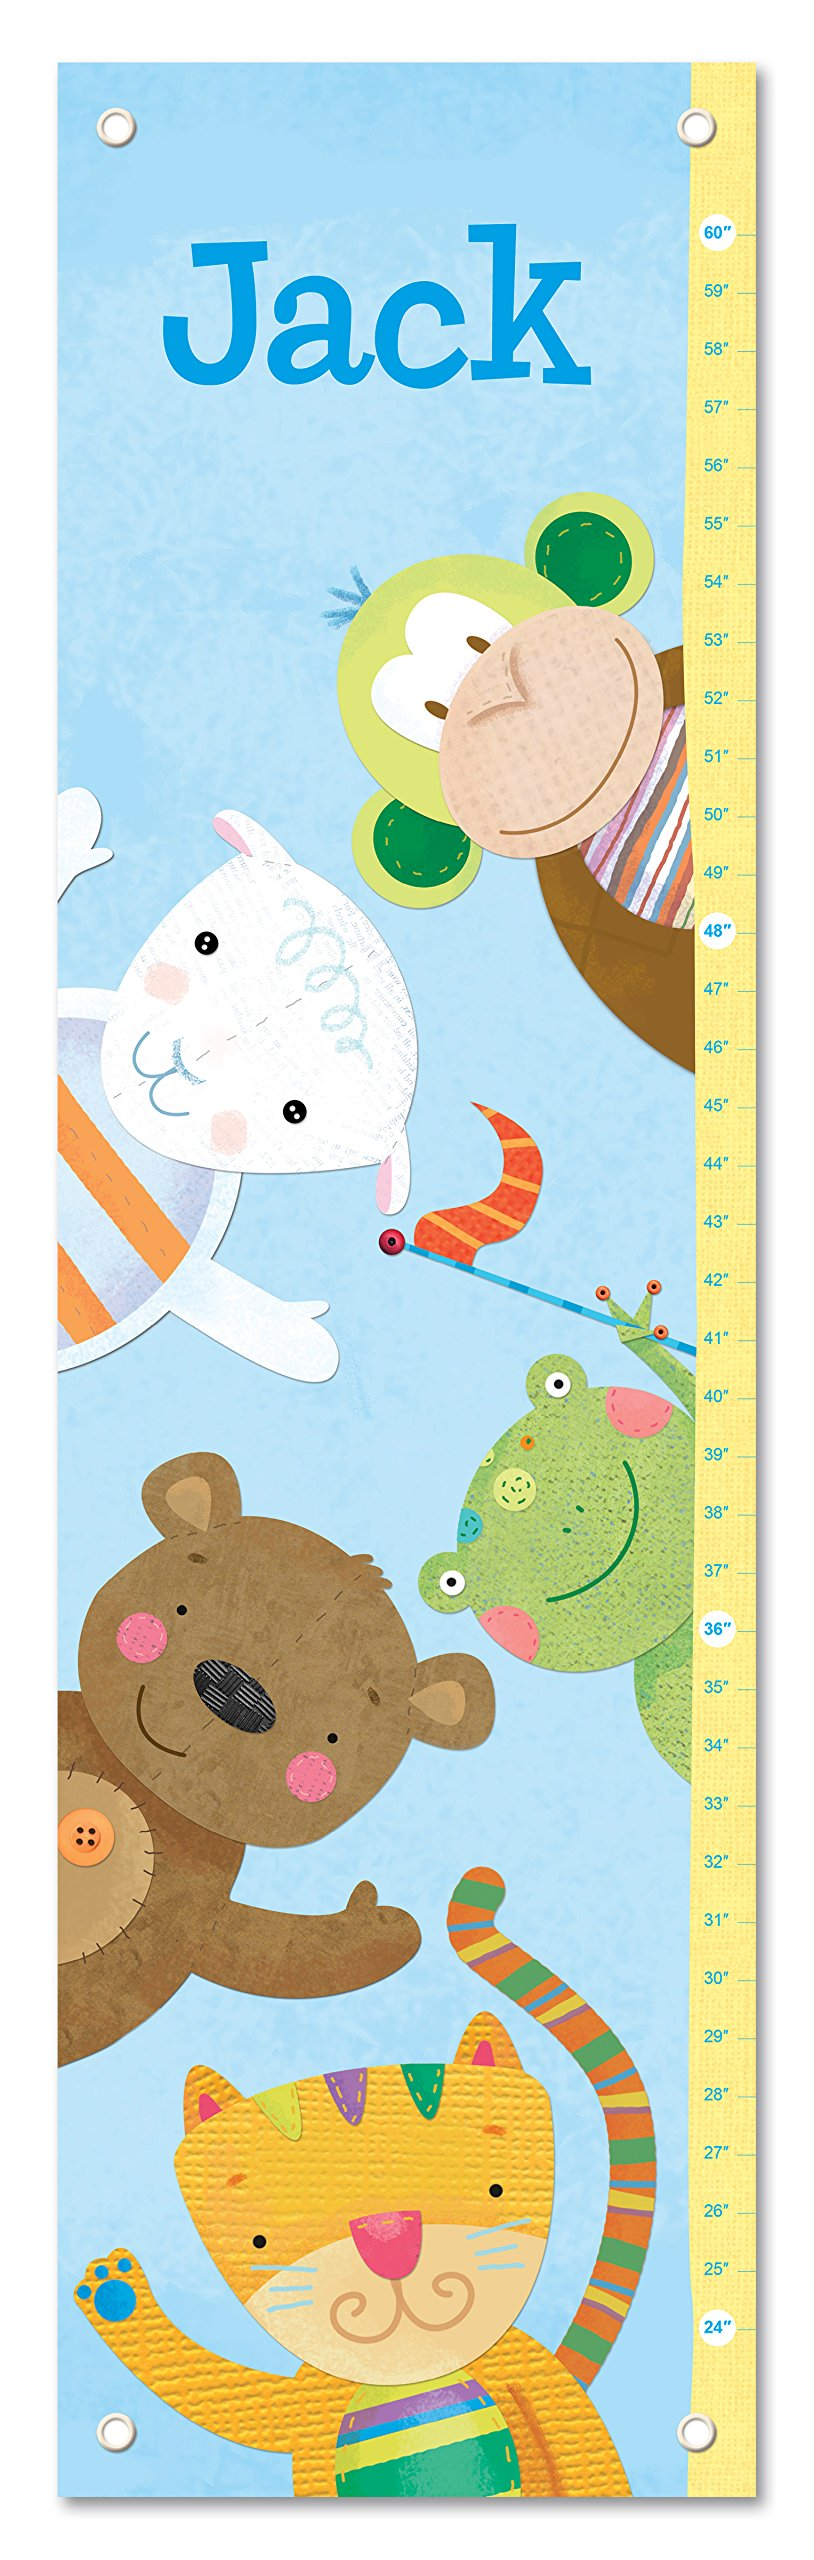 Personalized Growth Chart Ruler Zoo Nursery Décor Boy by I See Me!